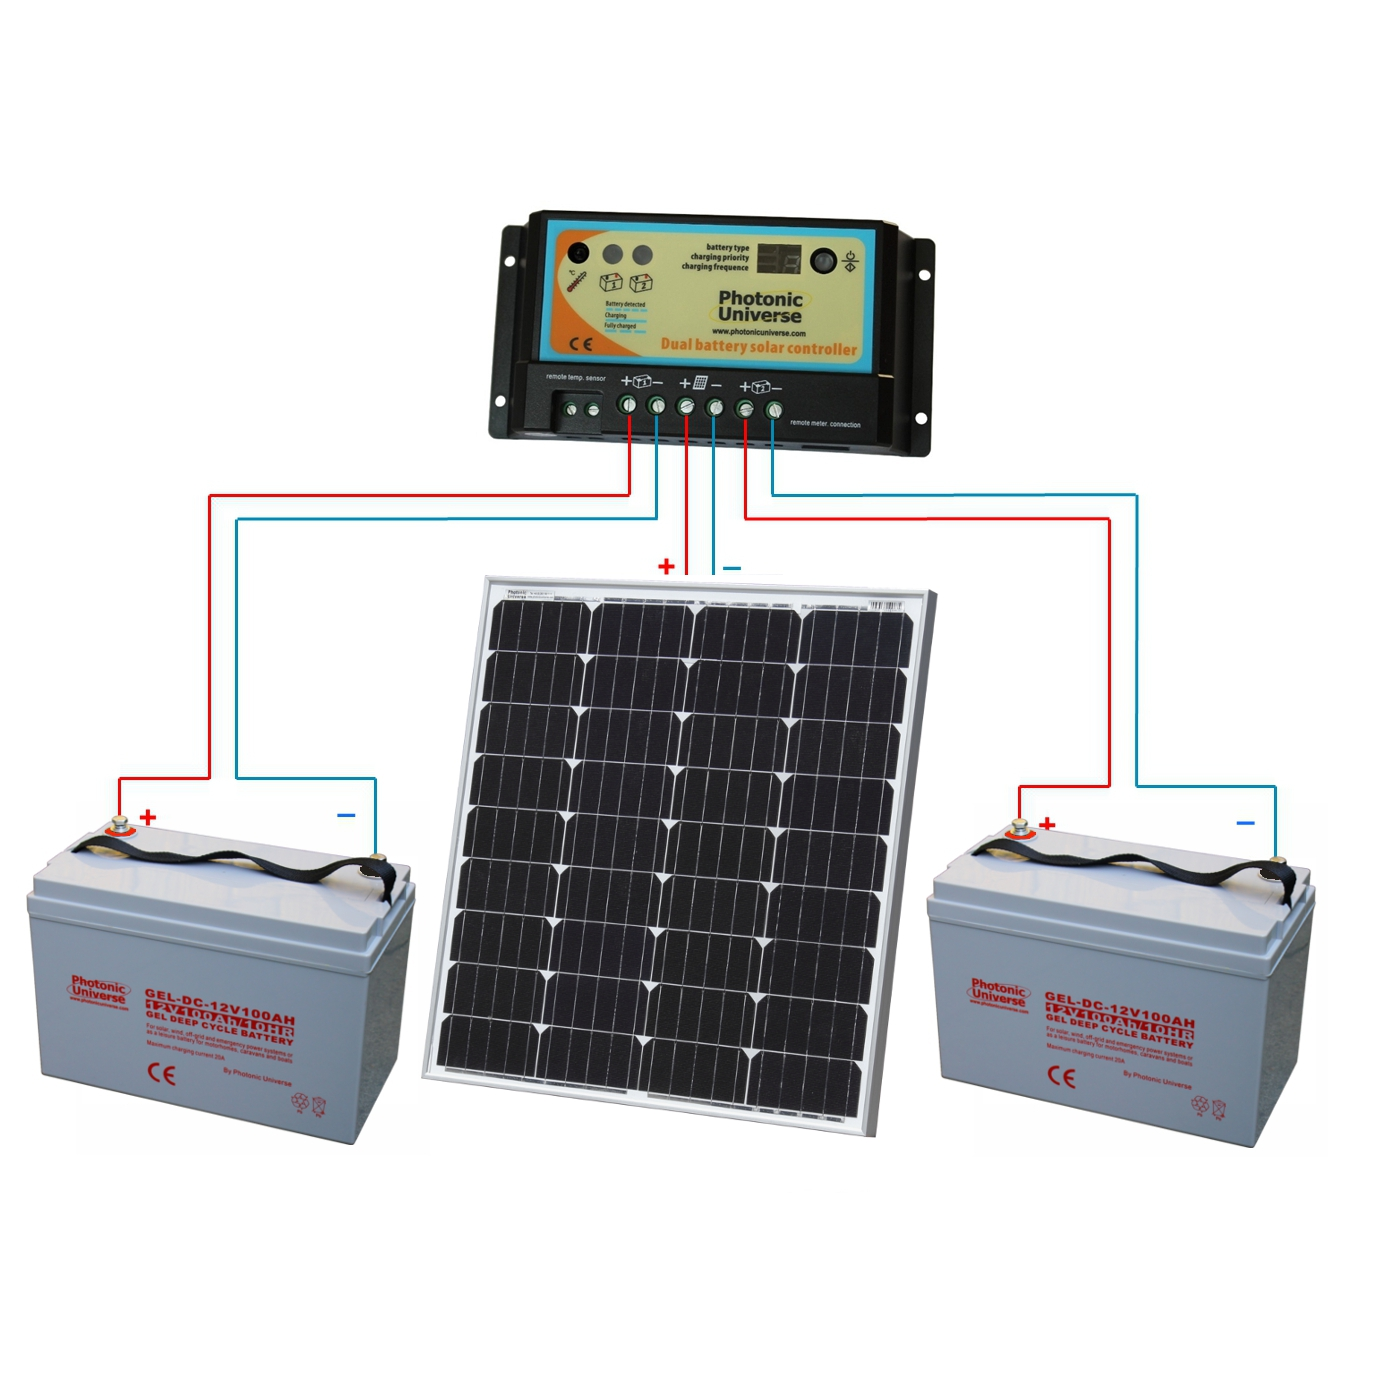 hight resolution of  boats 80w db kit connection scheme 12v solar panels charging kits for caravans motorhomes boats 12v solar panel wiring connection diagram